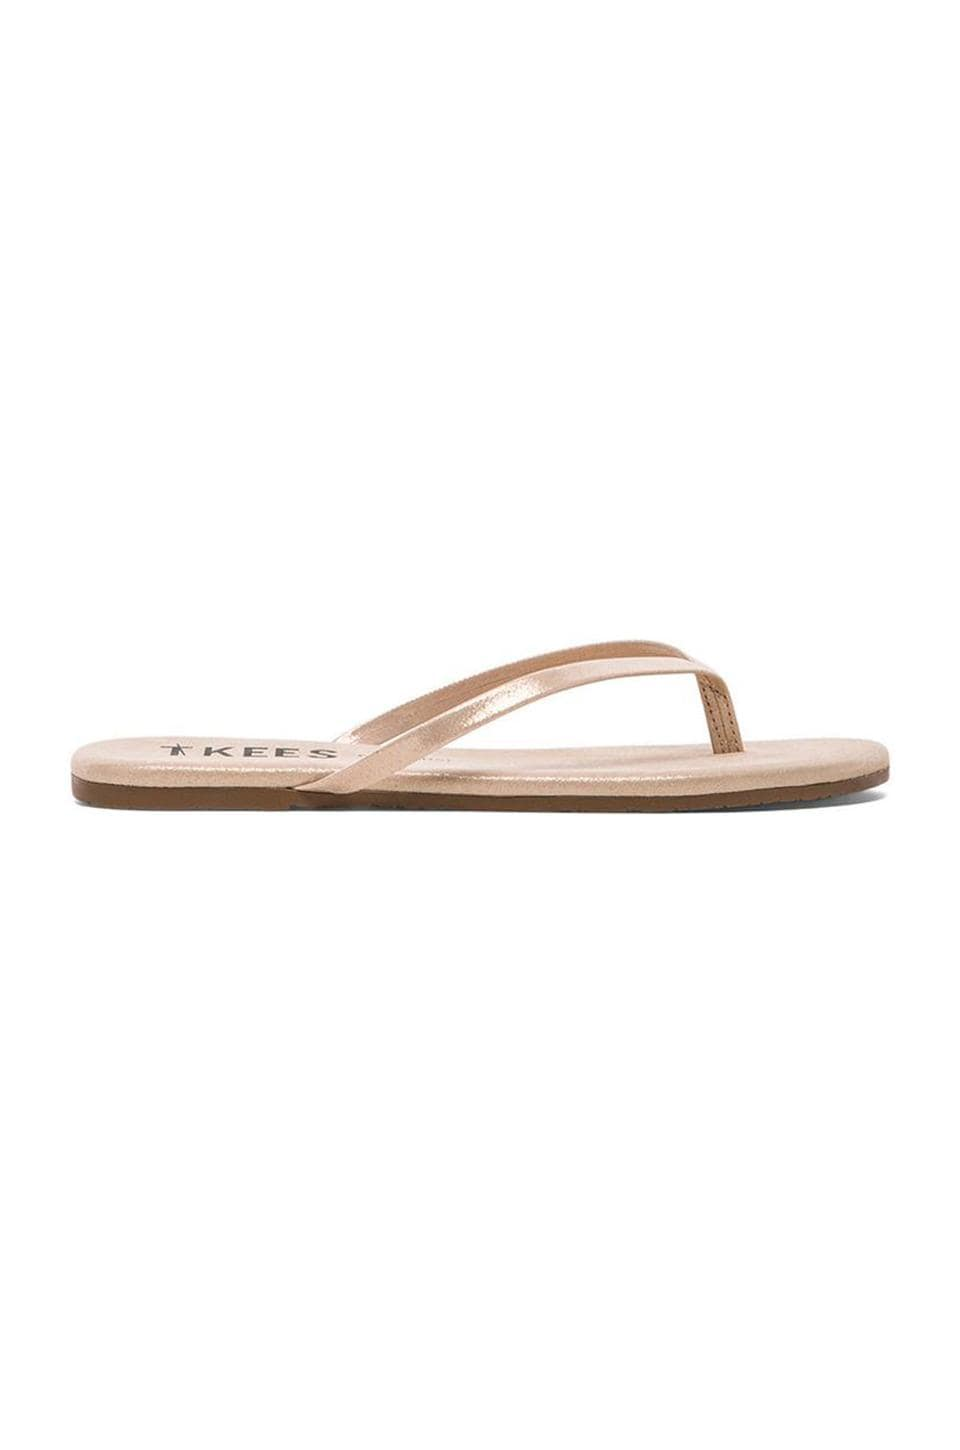 TKEES Sandal in Pink Pearl